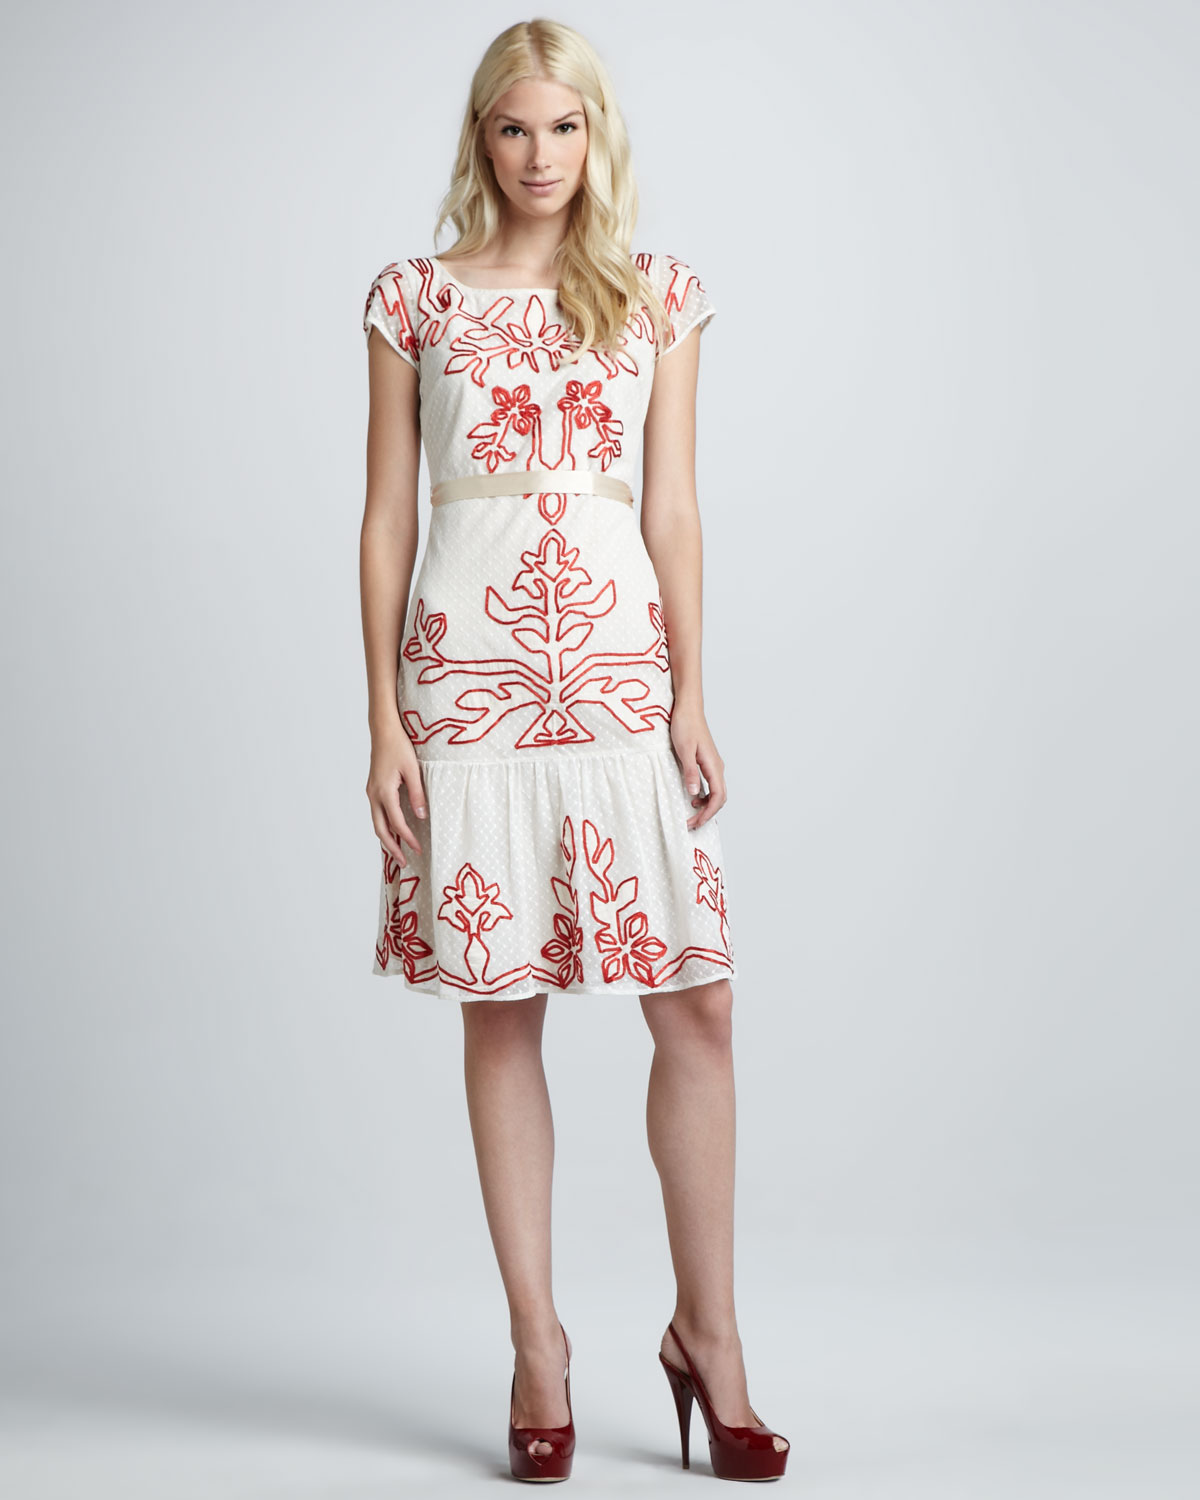 Alice by Temperley White Dress